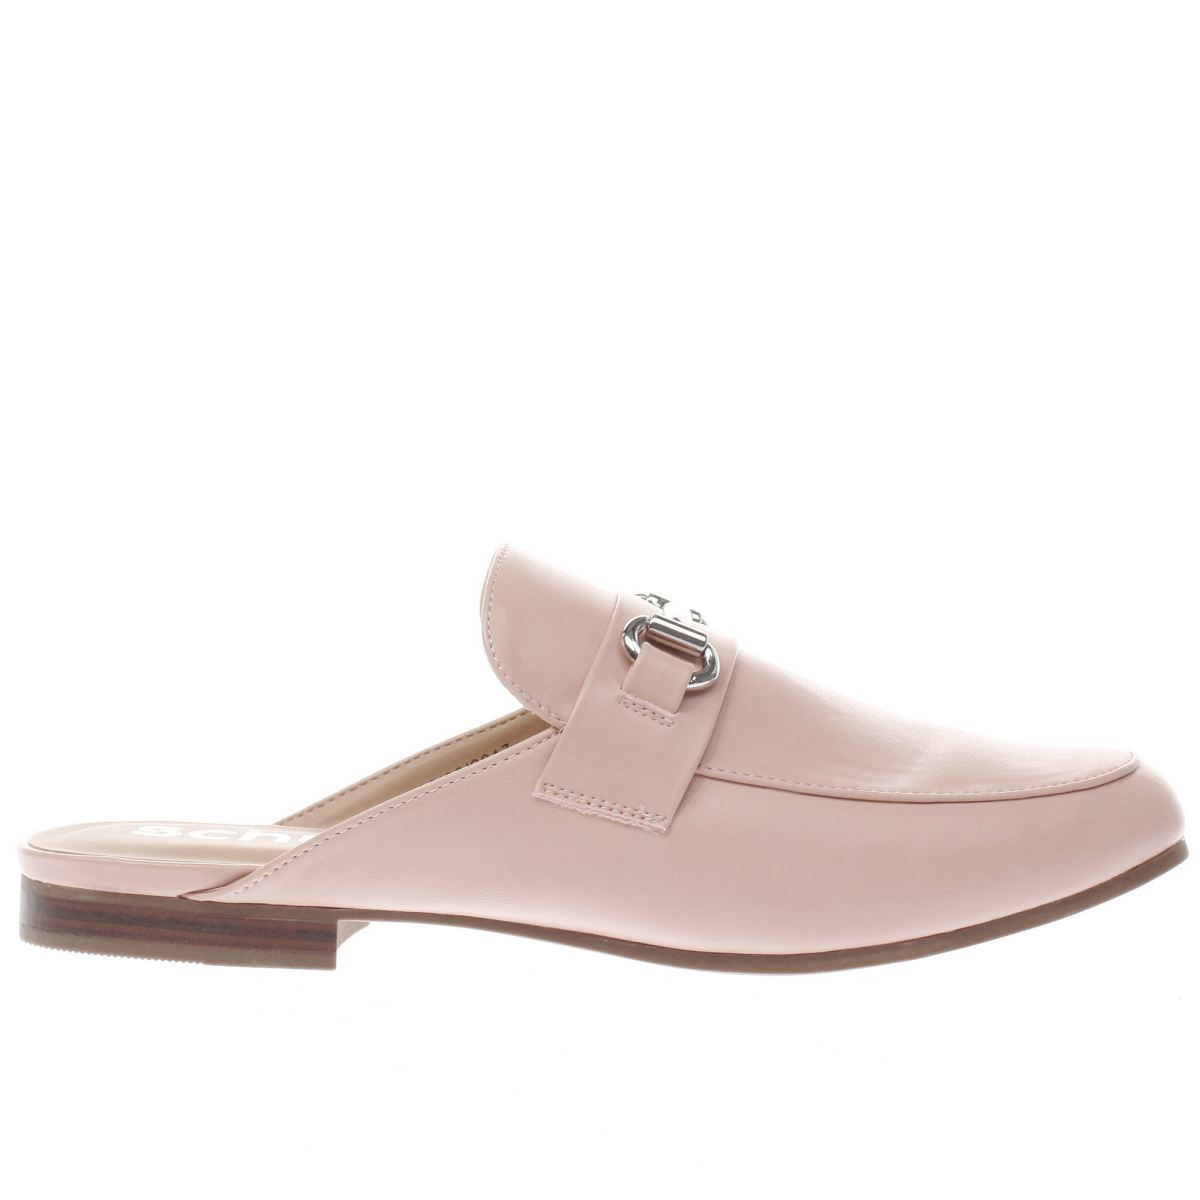 schuh pale pink posh flat shoes